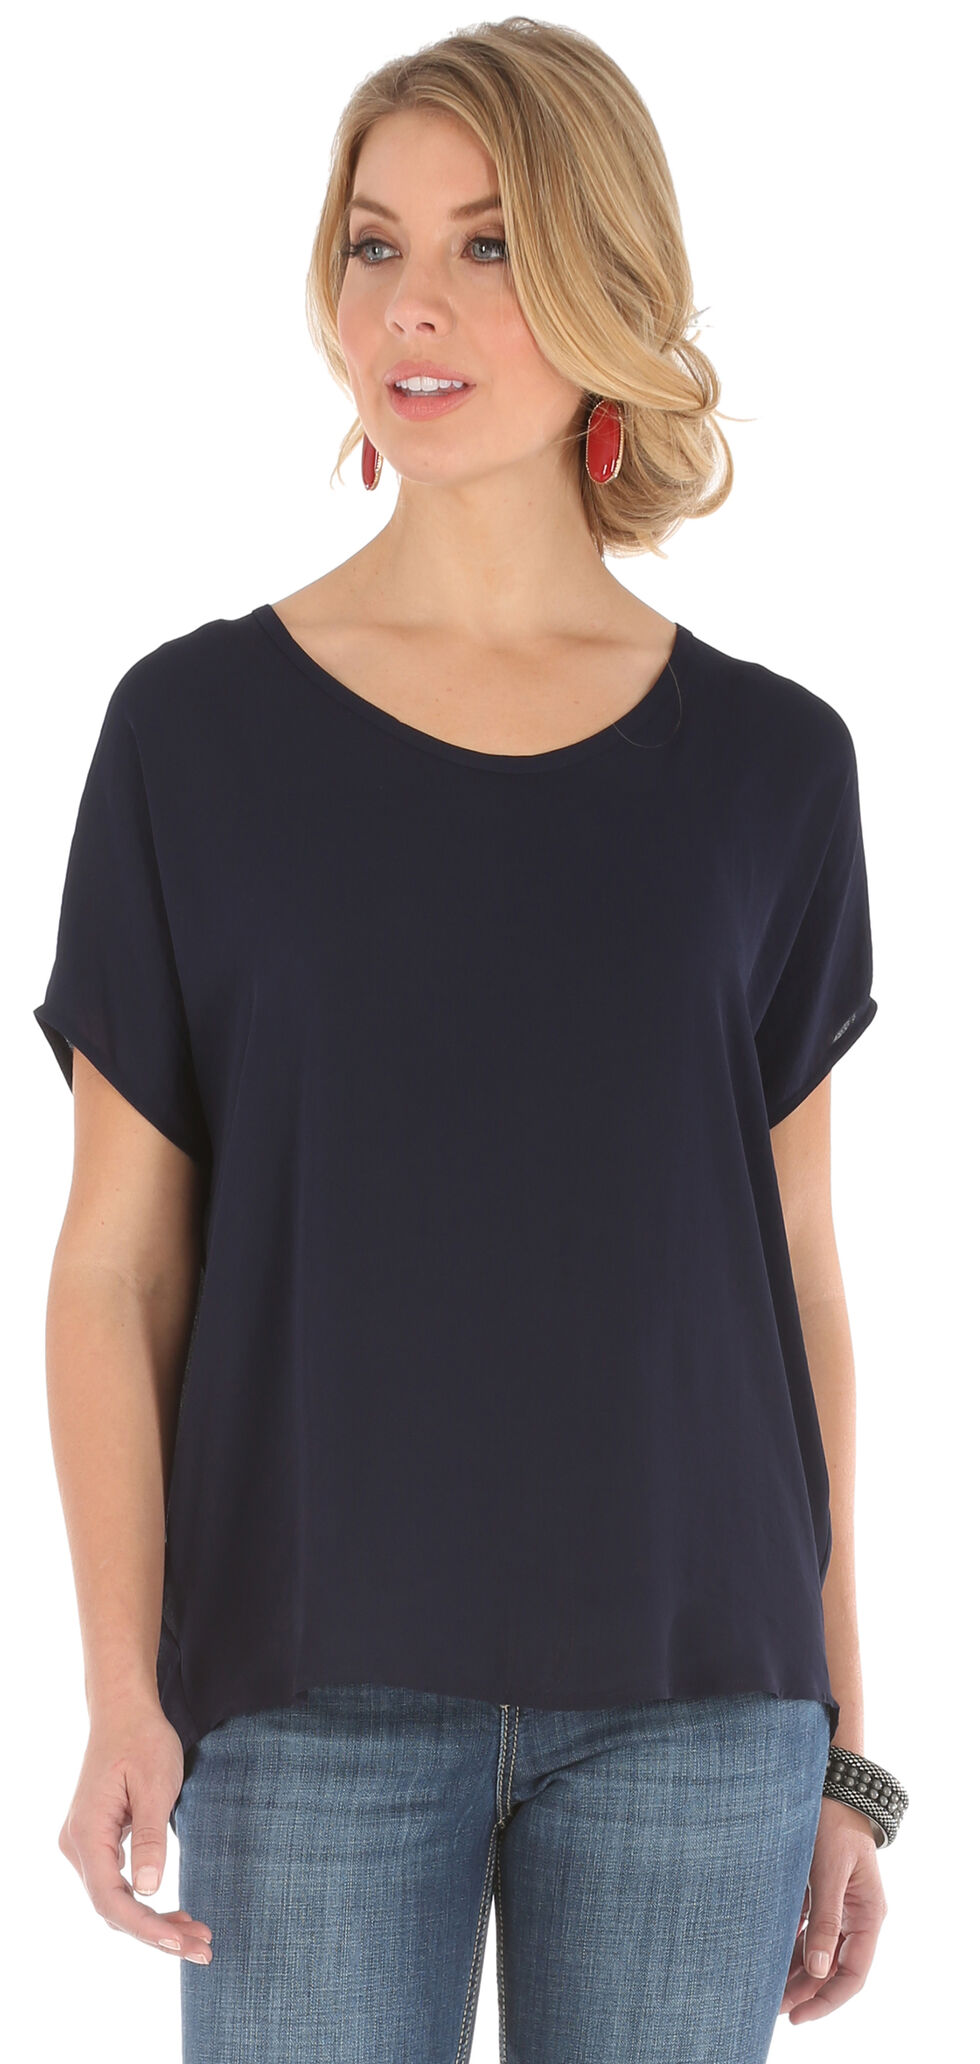 Wrangler Women's Dolman Top with Back Taping, Black, hi-res